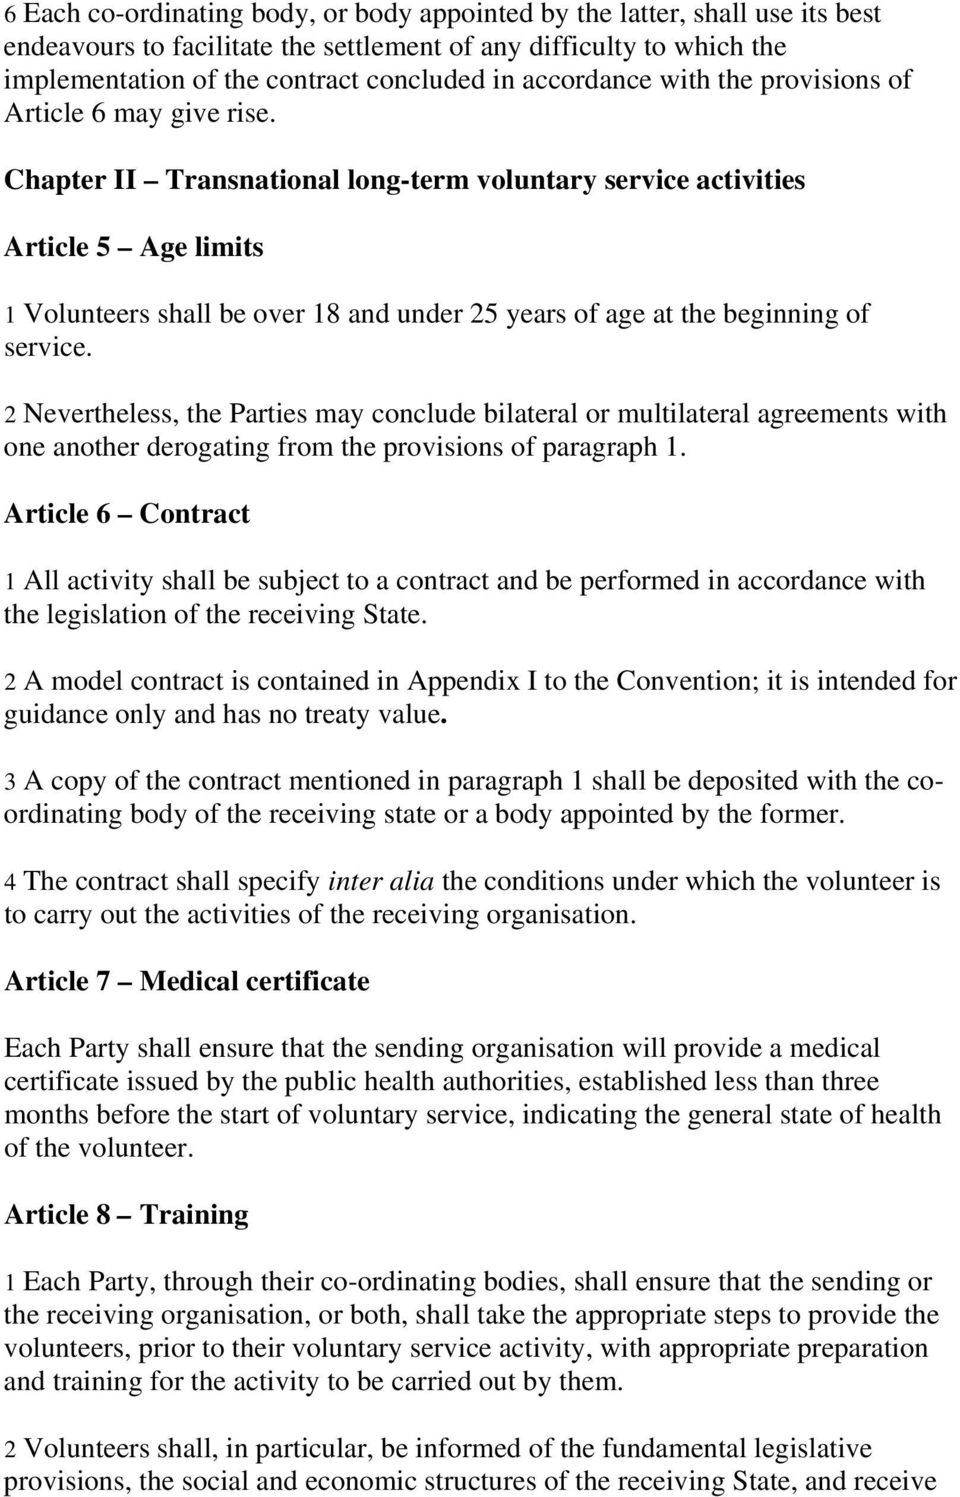 Chapter II Transnational long-term voluntary service activities Article 5 Age limits 1 Volunteers shall be over 18 and under 25 years of age at the beginning of service.